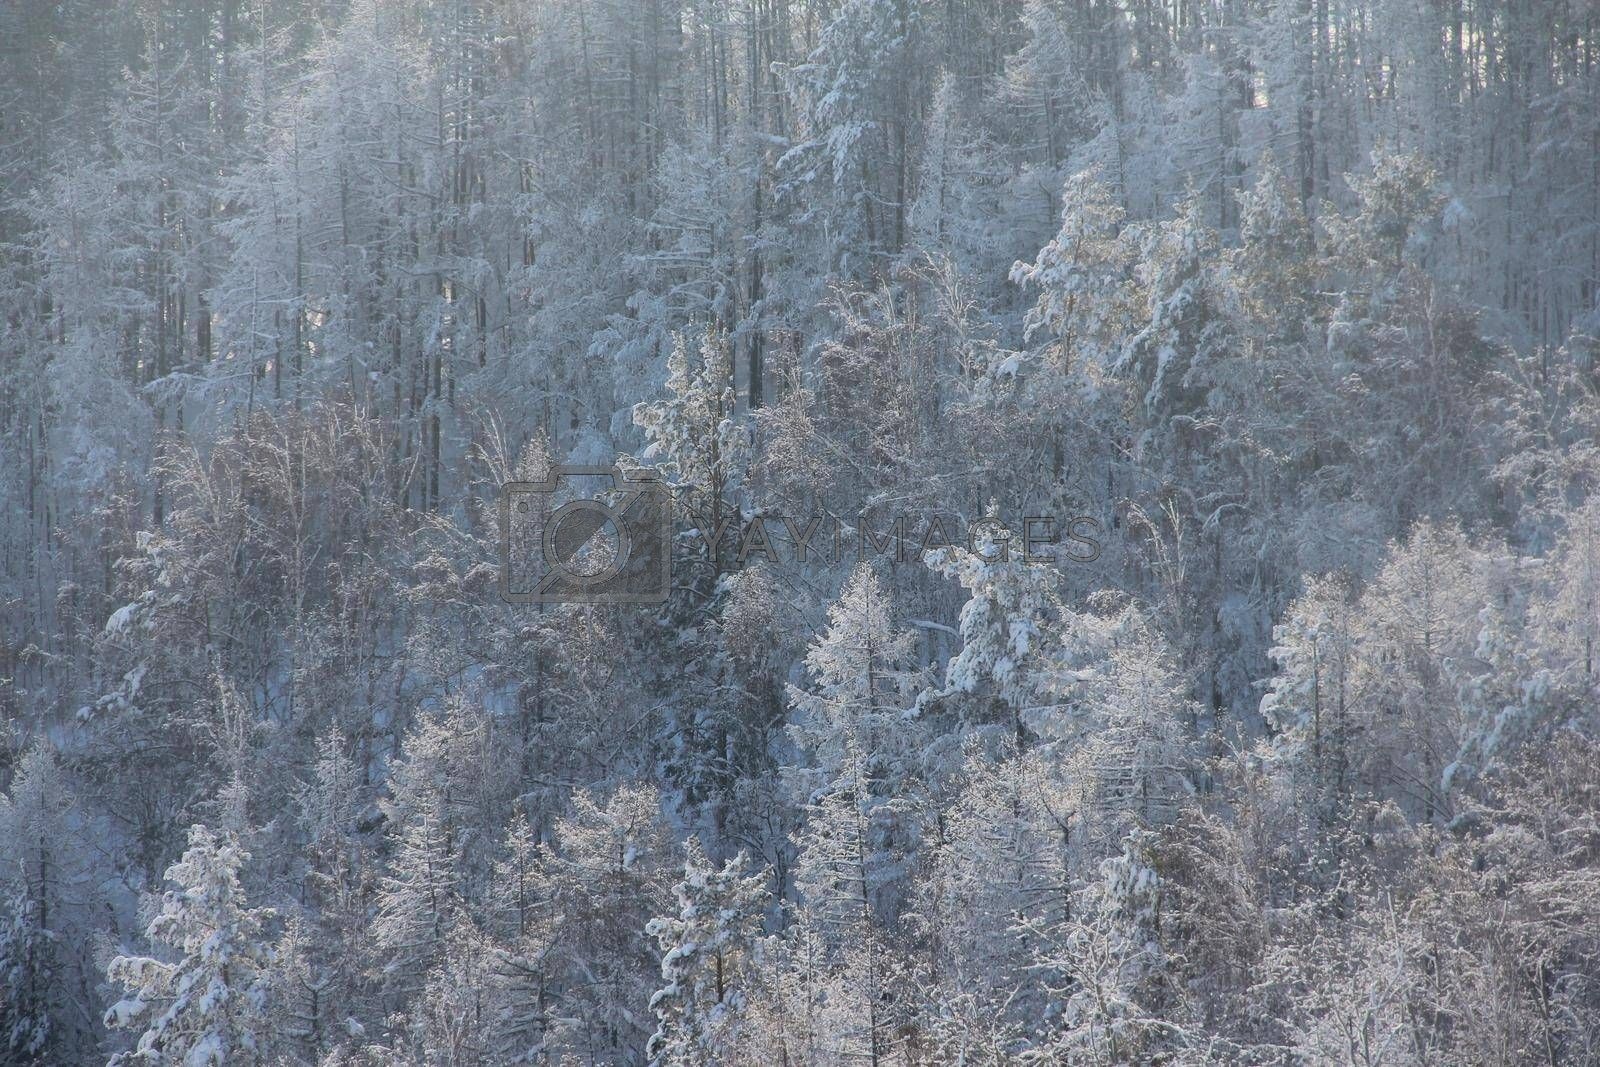 Sunny winter birch Forest Landscape aerial view background Travel serene scenic view